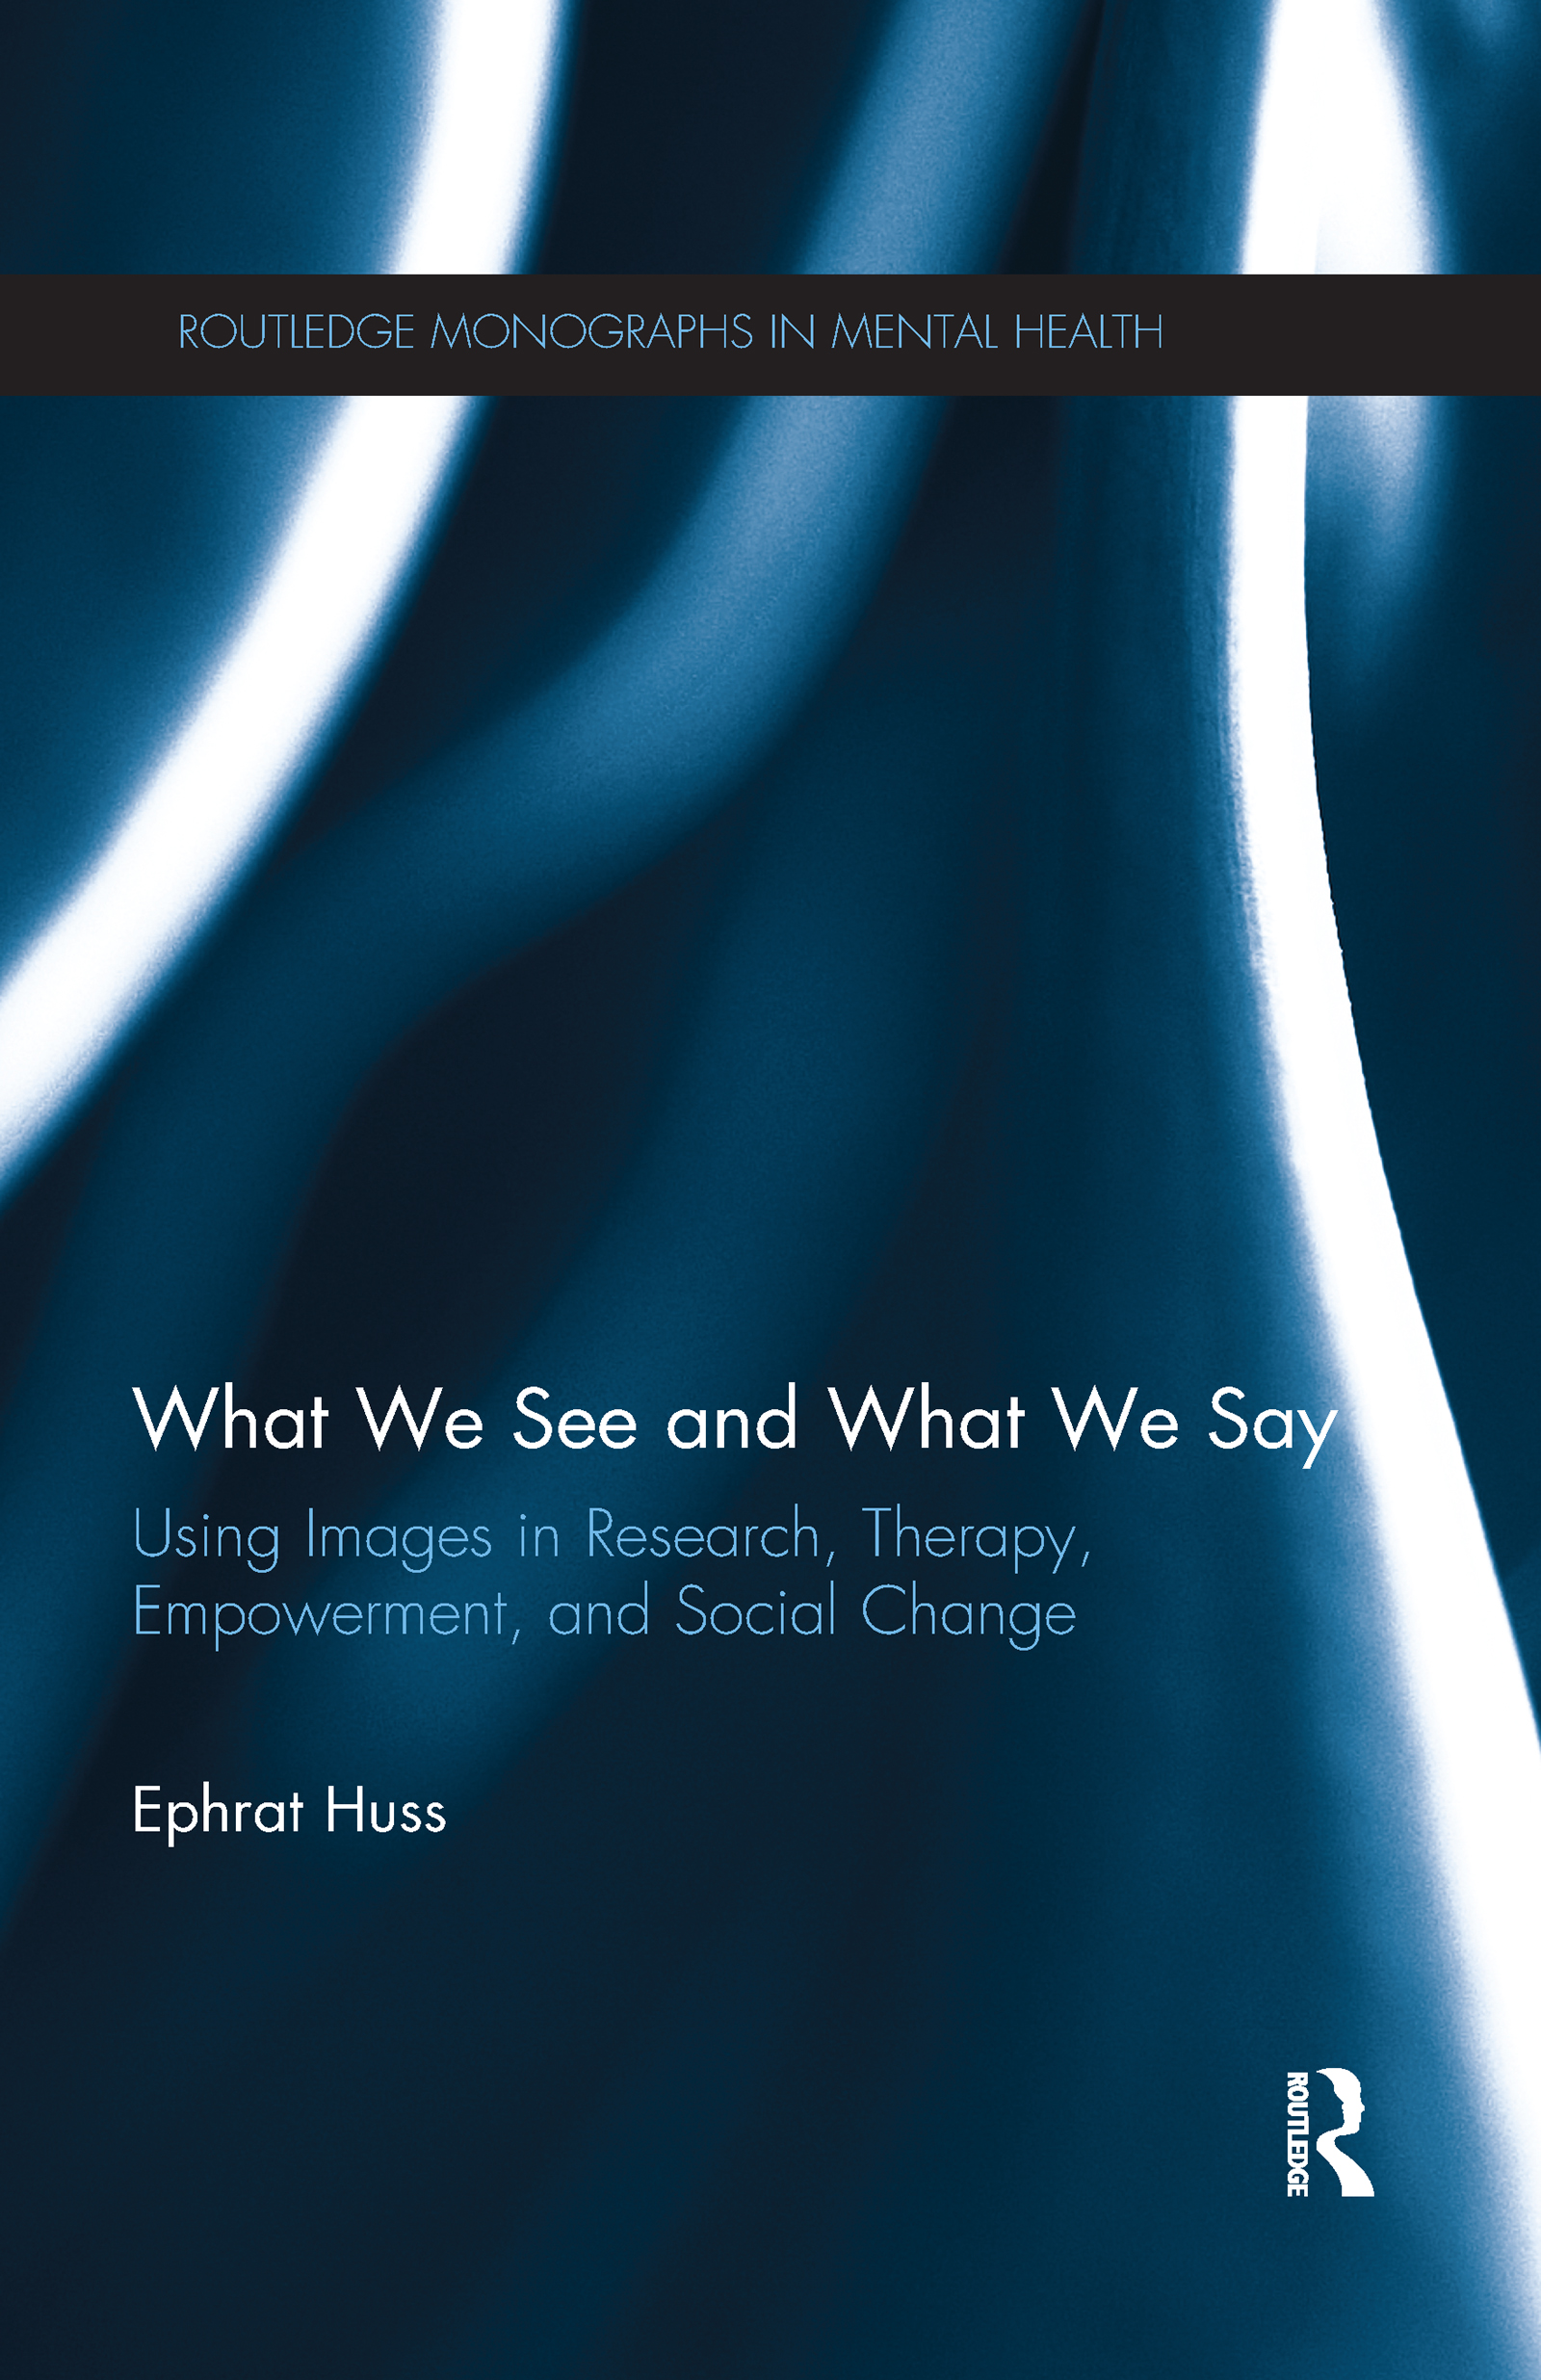 What We See and What We Say